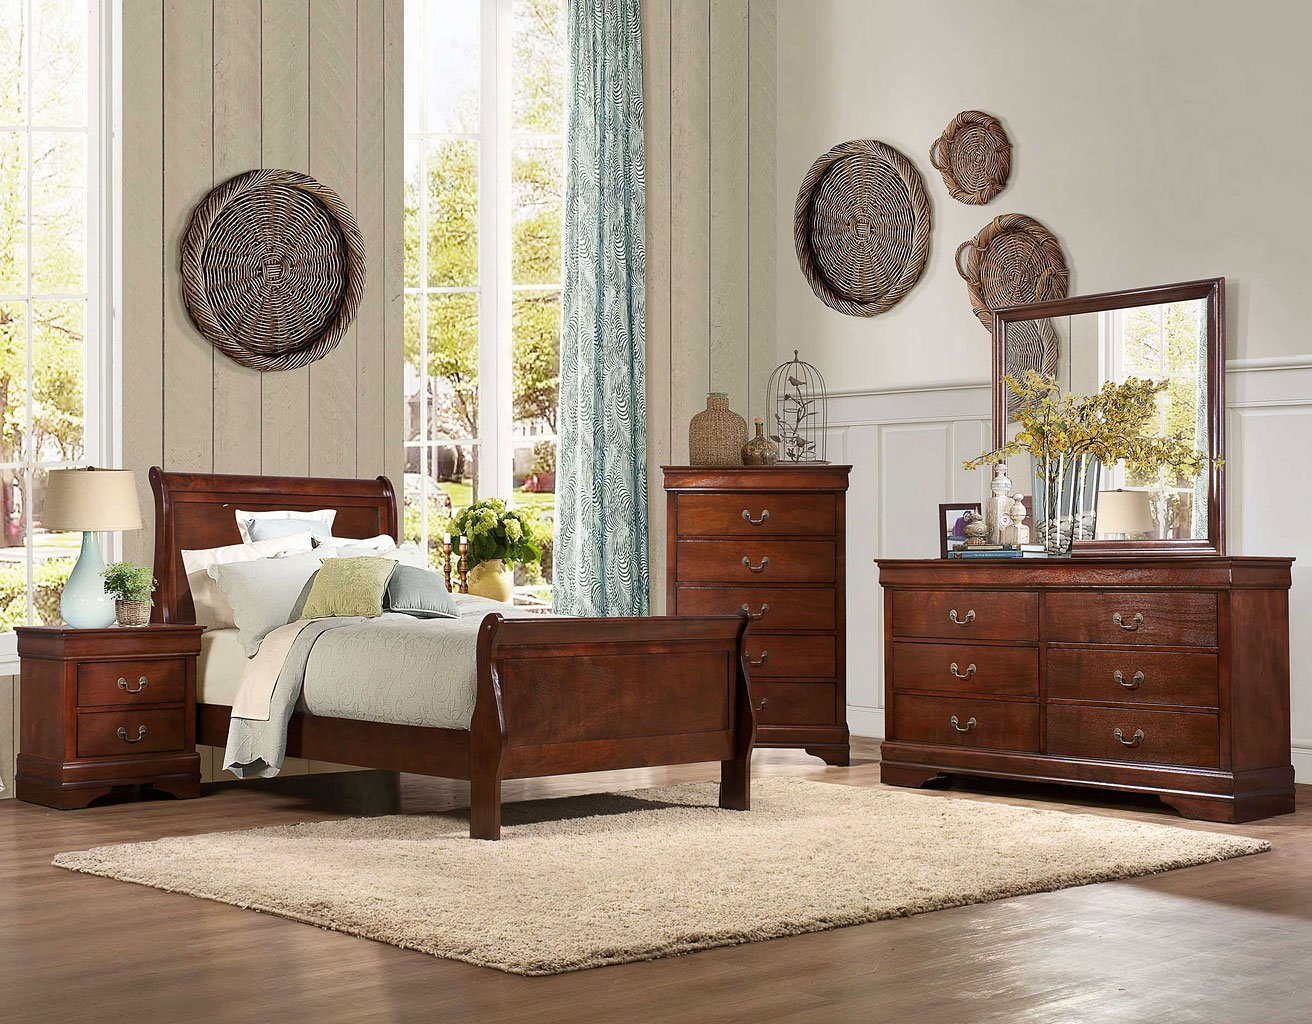 Mayville Youth Sleigh Bedroom Set   Kids Room Sets   Kids And Youth  Furniture   Kids Room